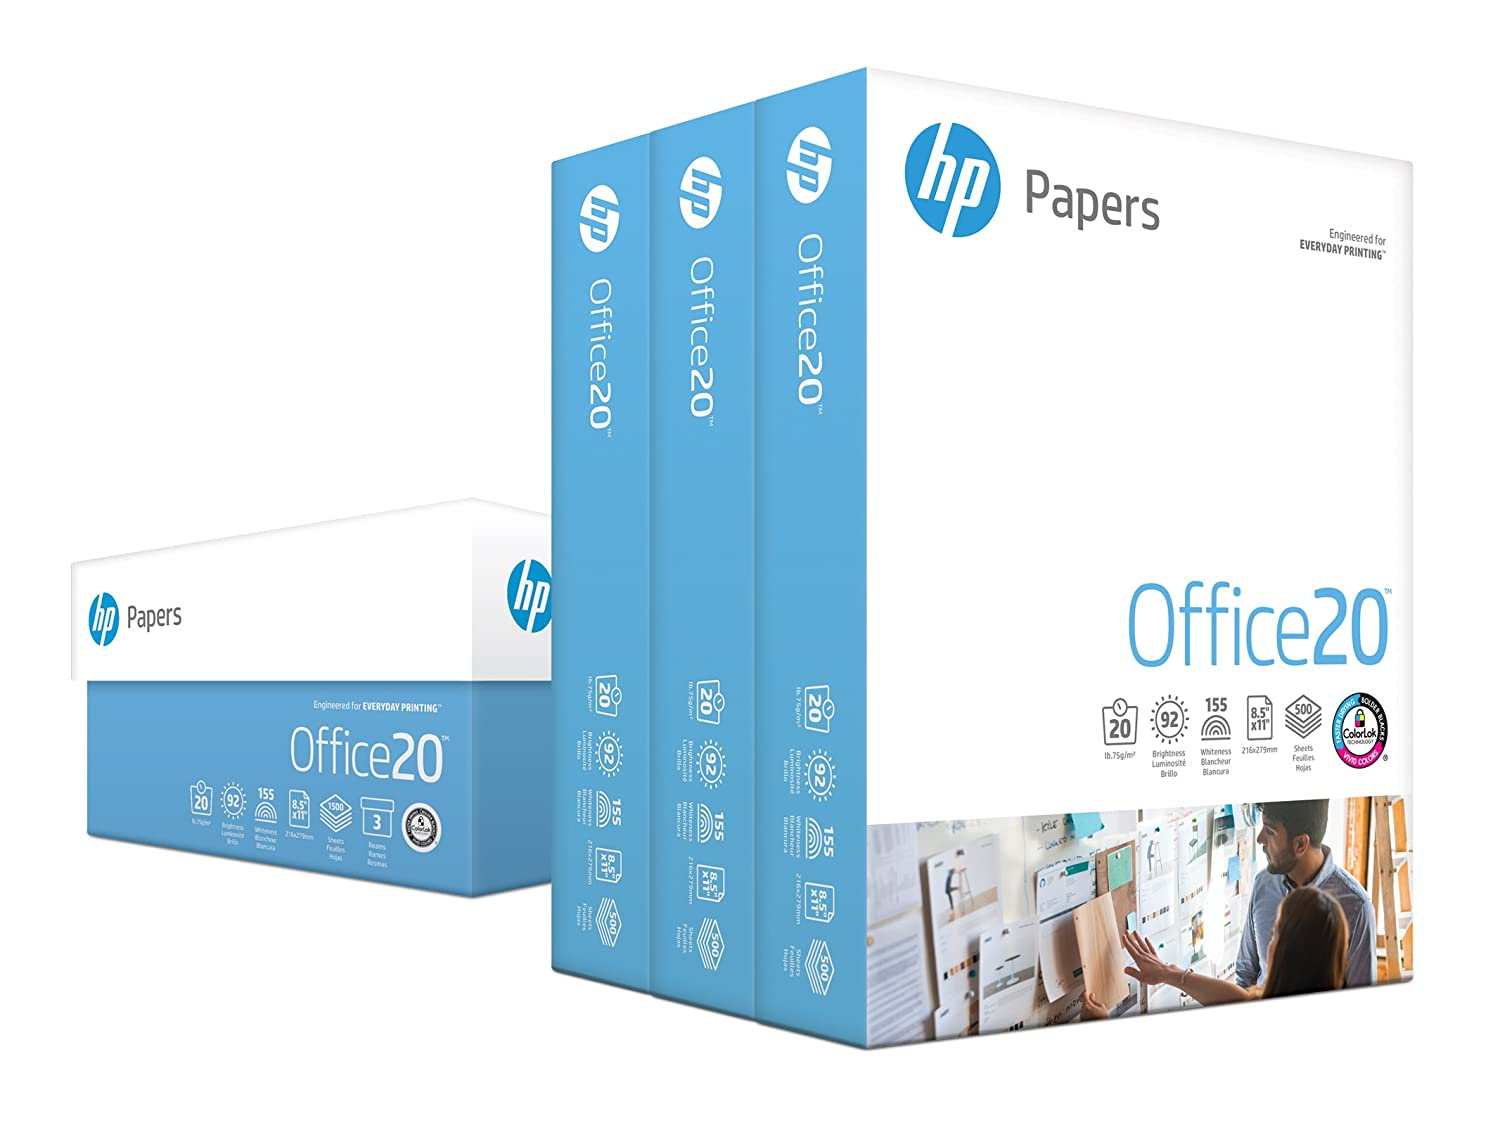 HP Printer Paper, Office20 Paper, 8.5 x 11, Letter Size, 20lb, 92 Bright, 3 Ream Case / 1,500 Sheets (112090C) Acid Free Paper